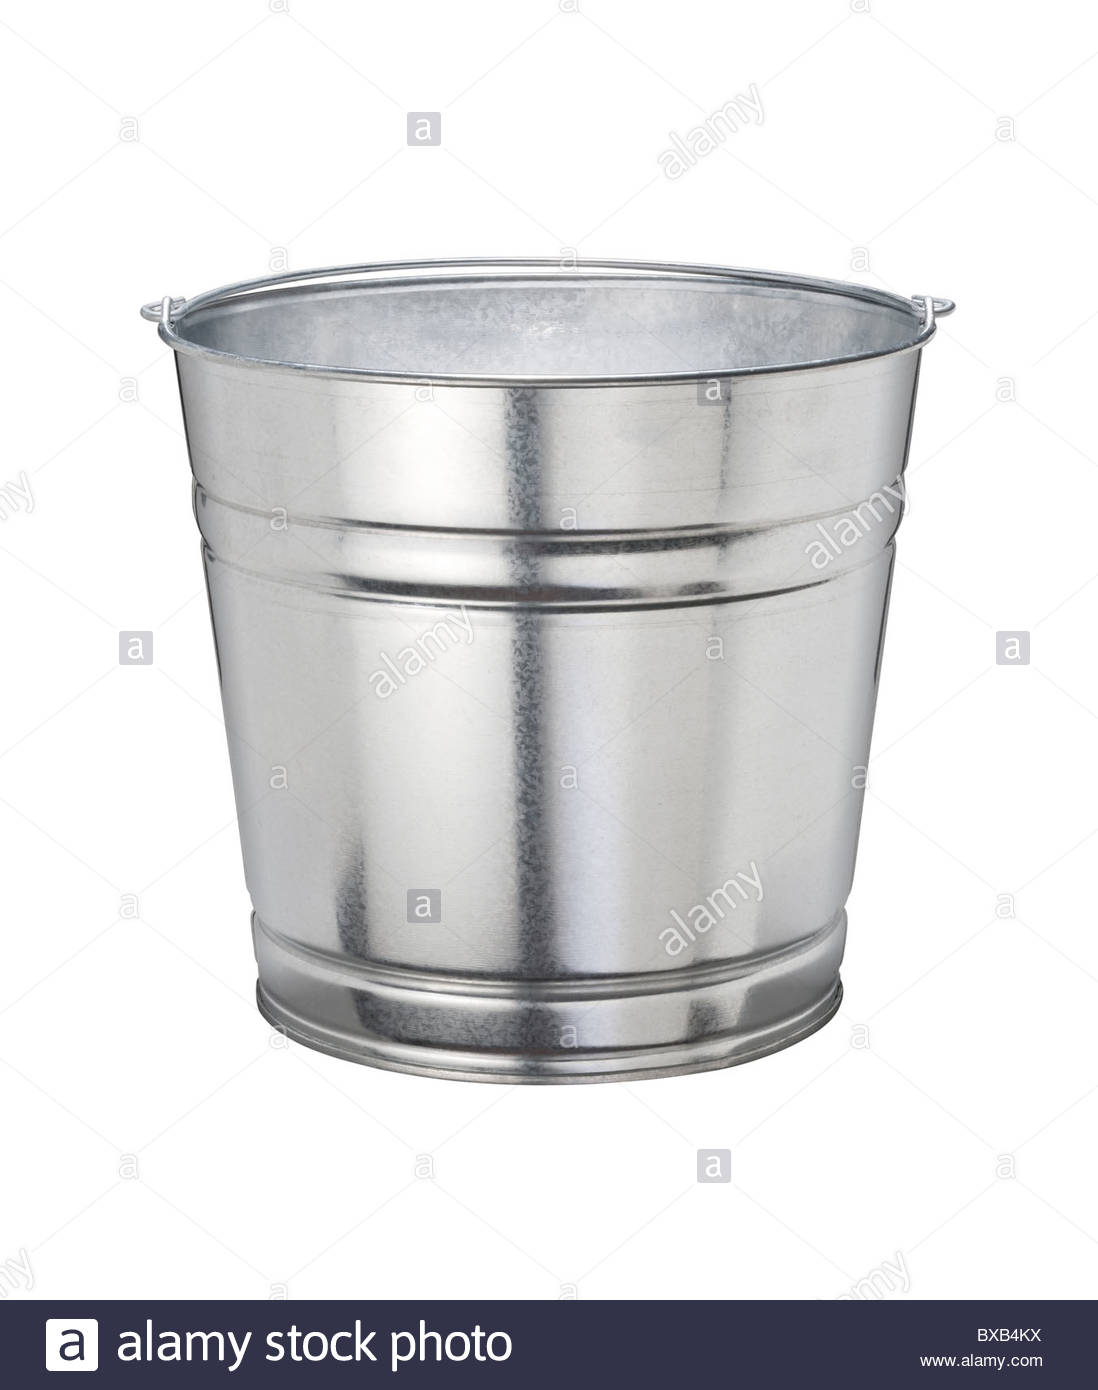 Aluminum Bucket isolated on a white background Stock Photo 1098x1390